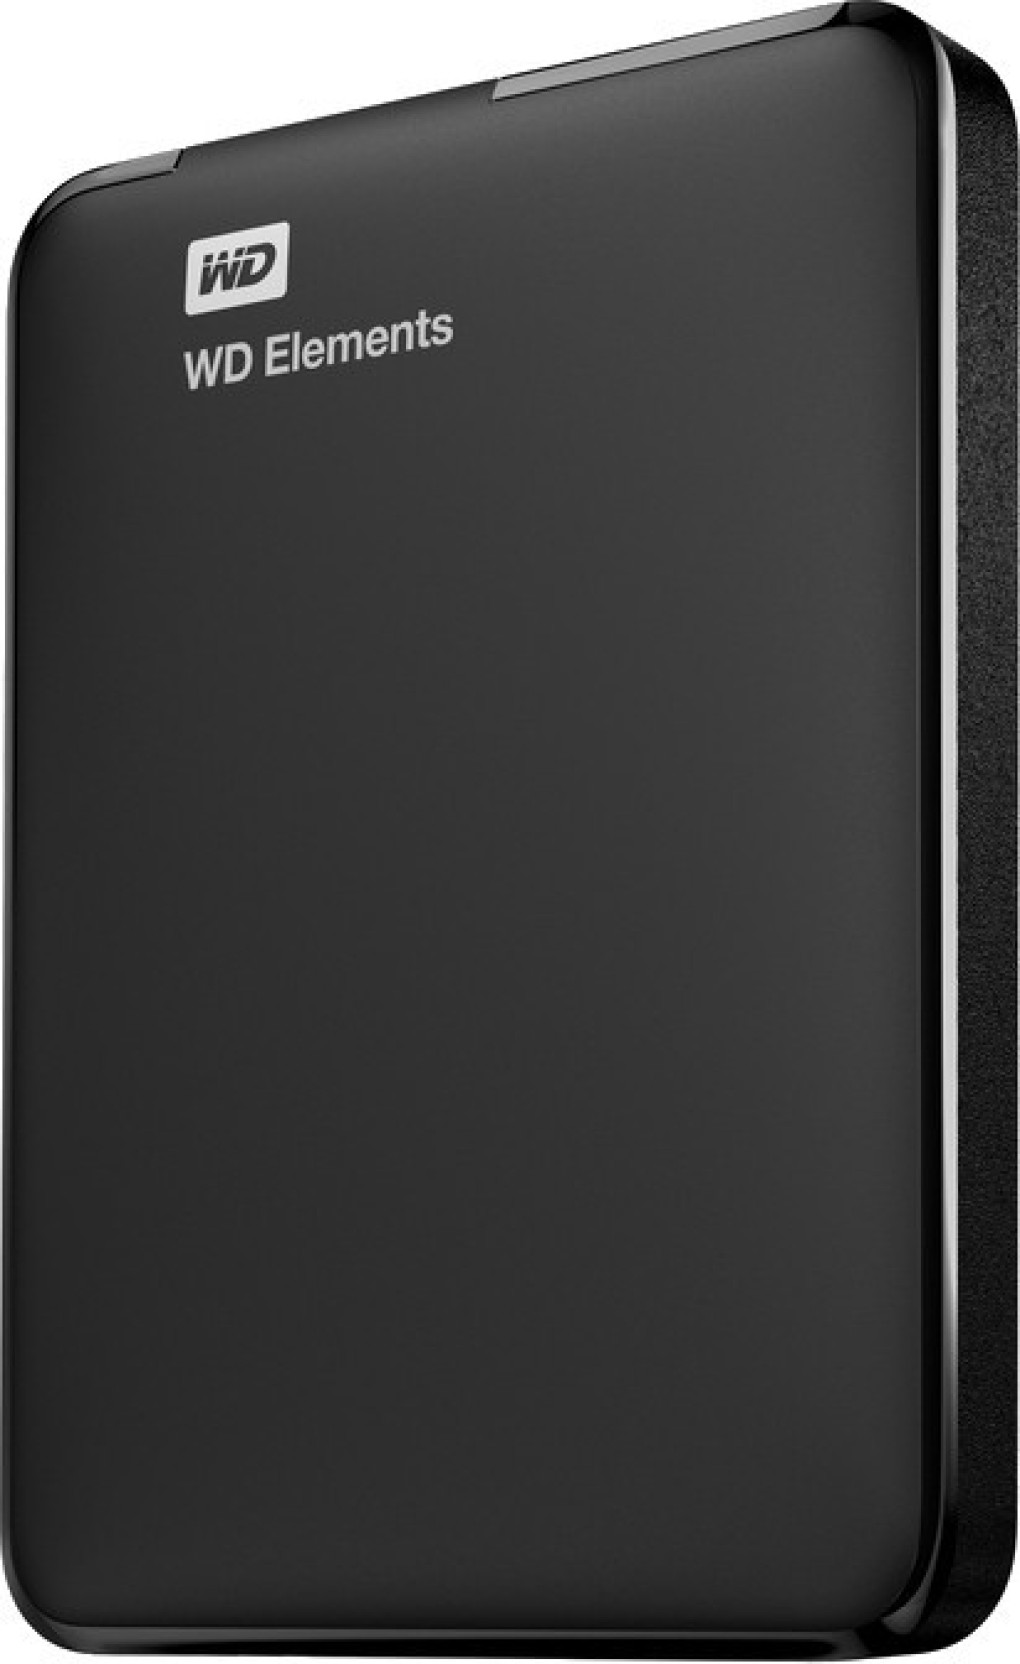 WD Elements 2.5 inch 2 TB External Hard Drive (Black)